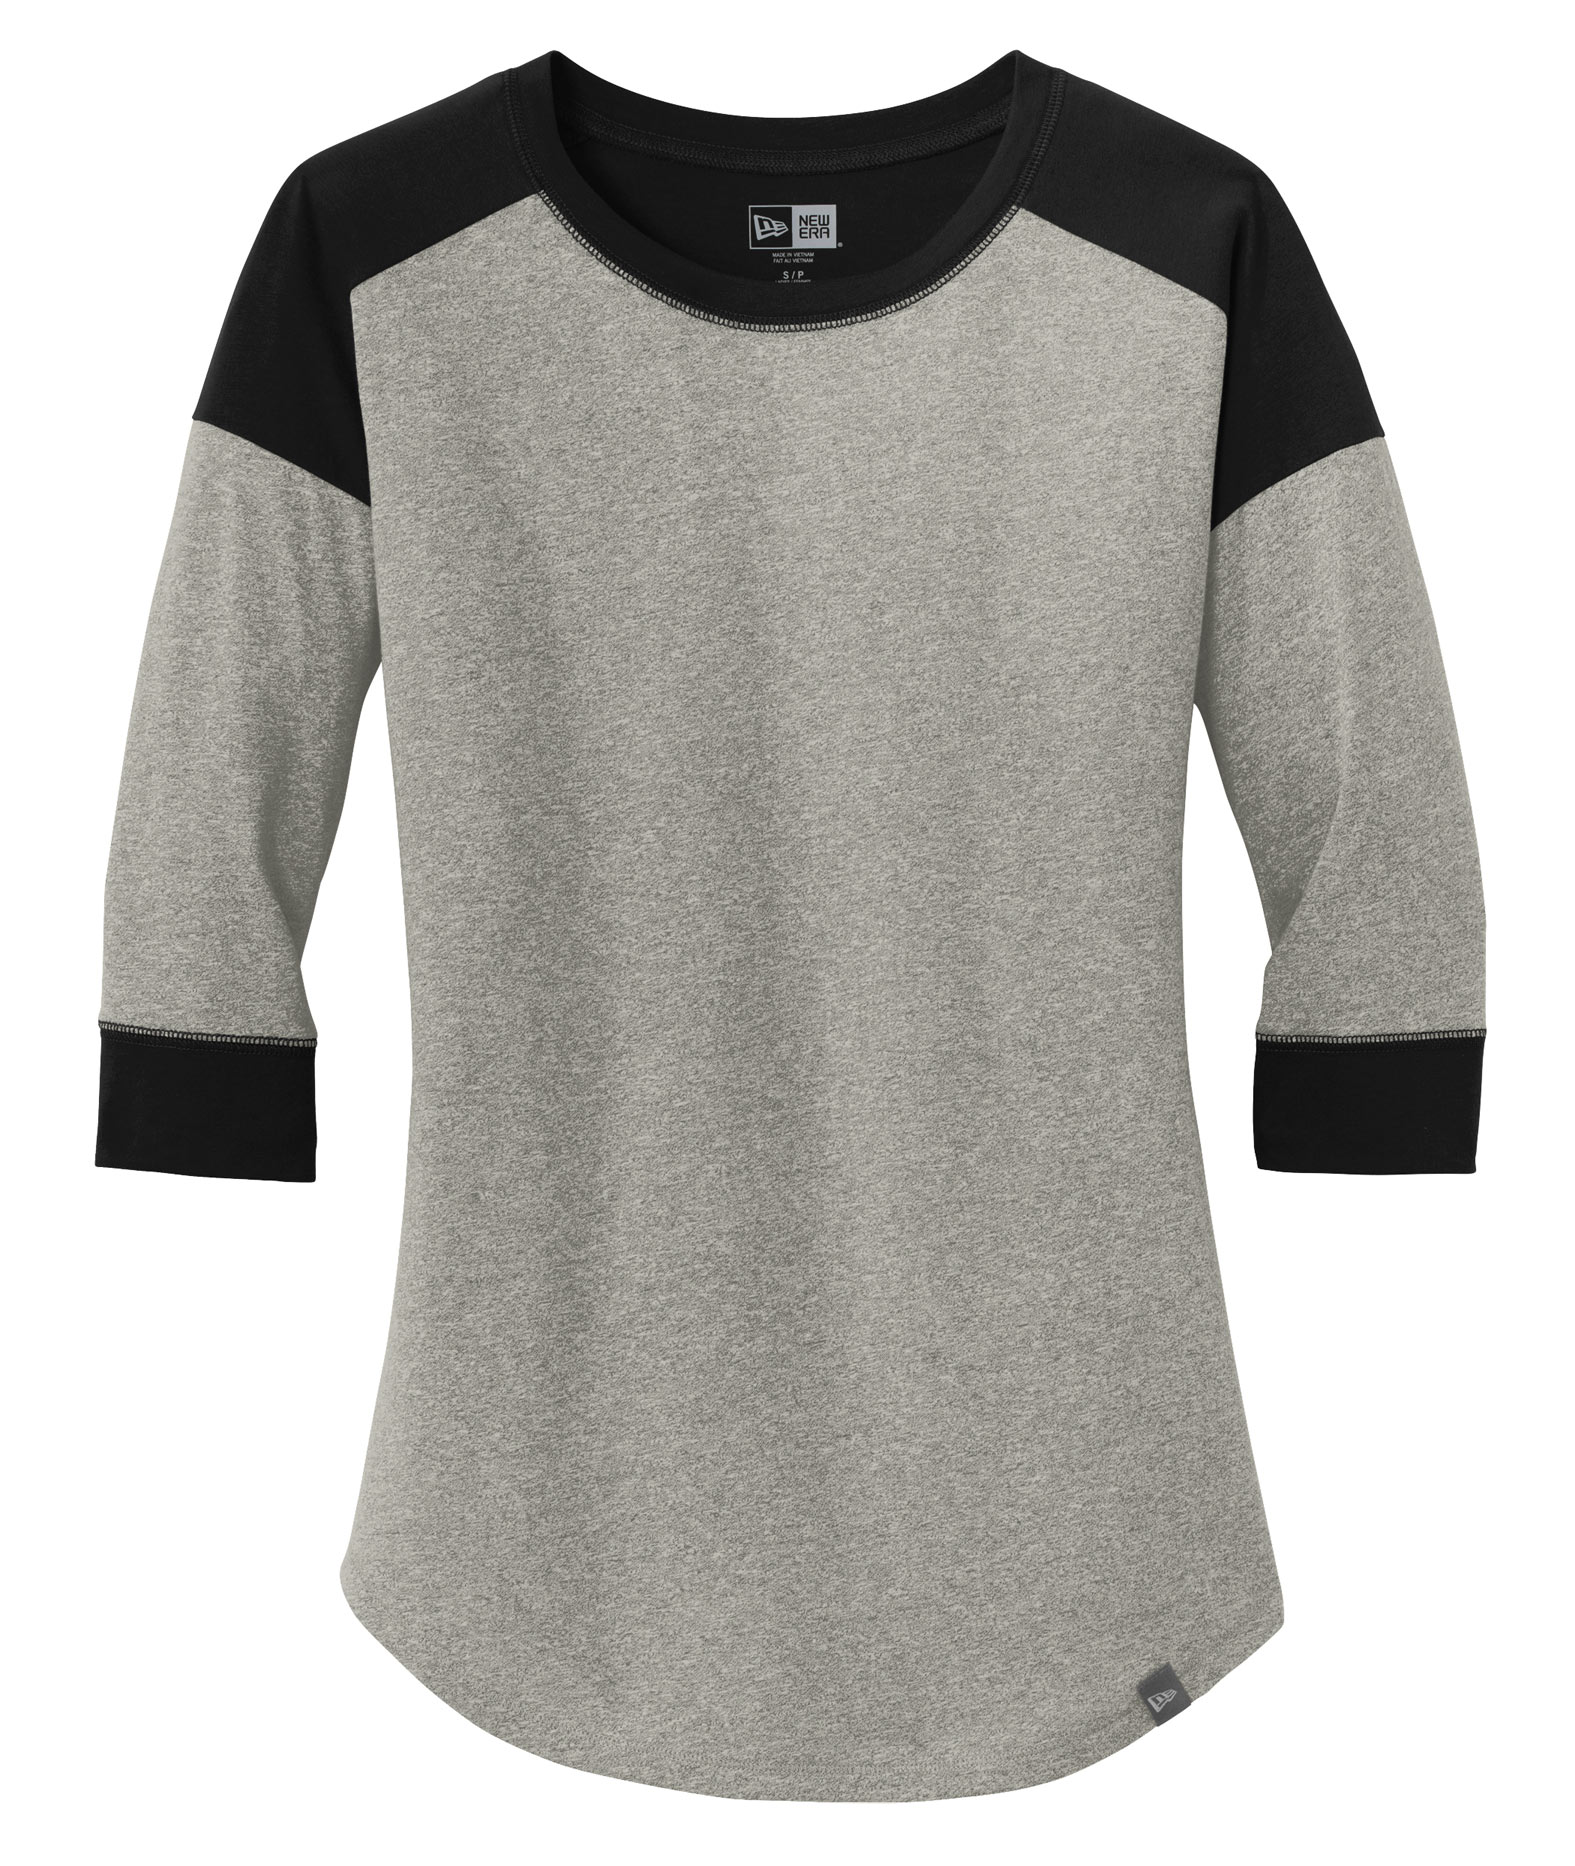 1435feff3f0 Custom New Era® Ladies Heritage Blend 3 4 Sleeve Baseball Raglan Tee